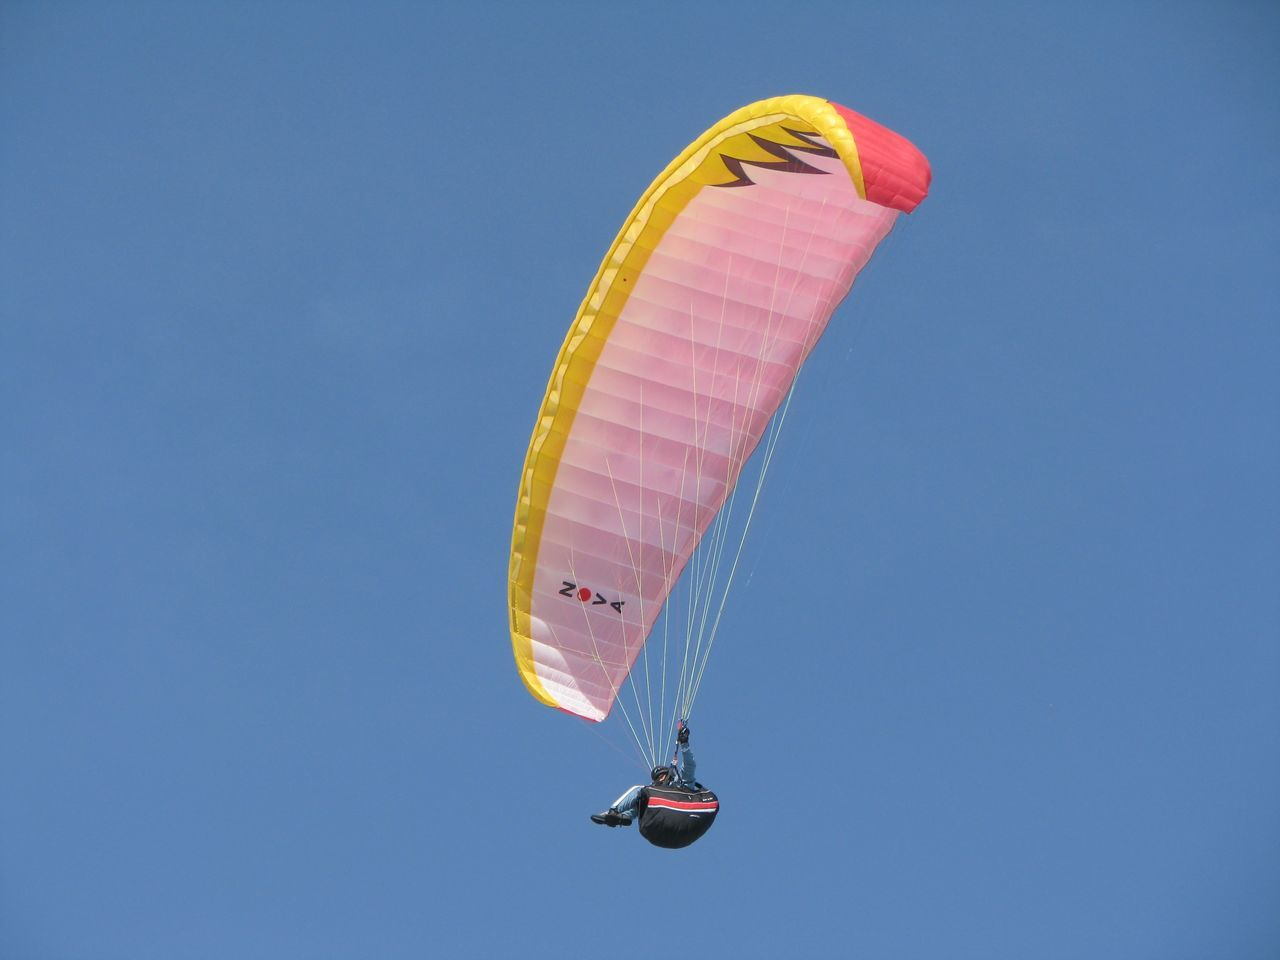 extreme sports, parachute, mid-air, flying, leisure activity, adventure, paragliding, low angle view, real people, lifestyles, skydiving, outdoors, day, blue, clear sky, sport, one person, nature, sky, people